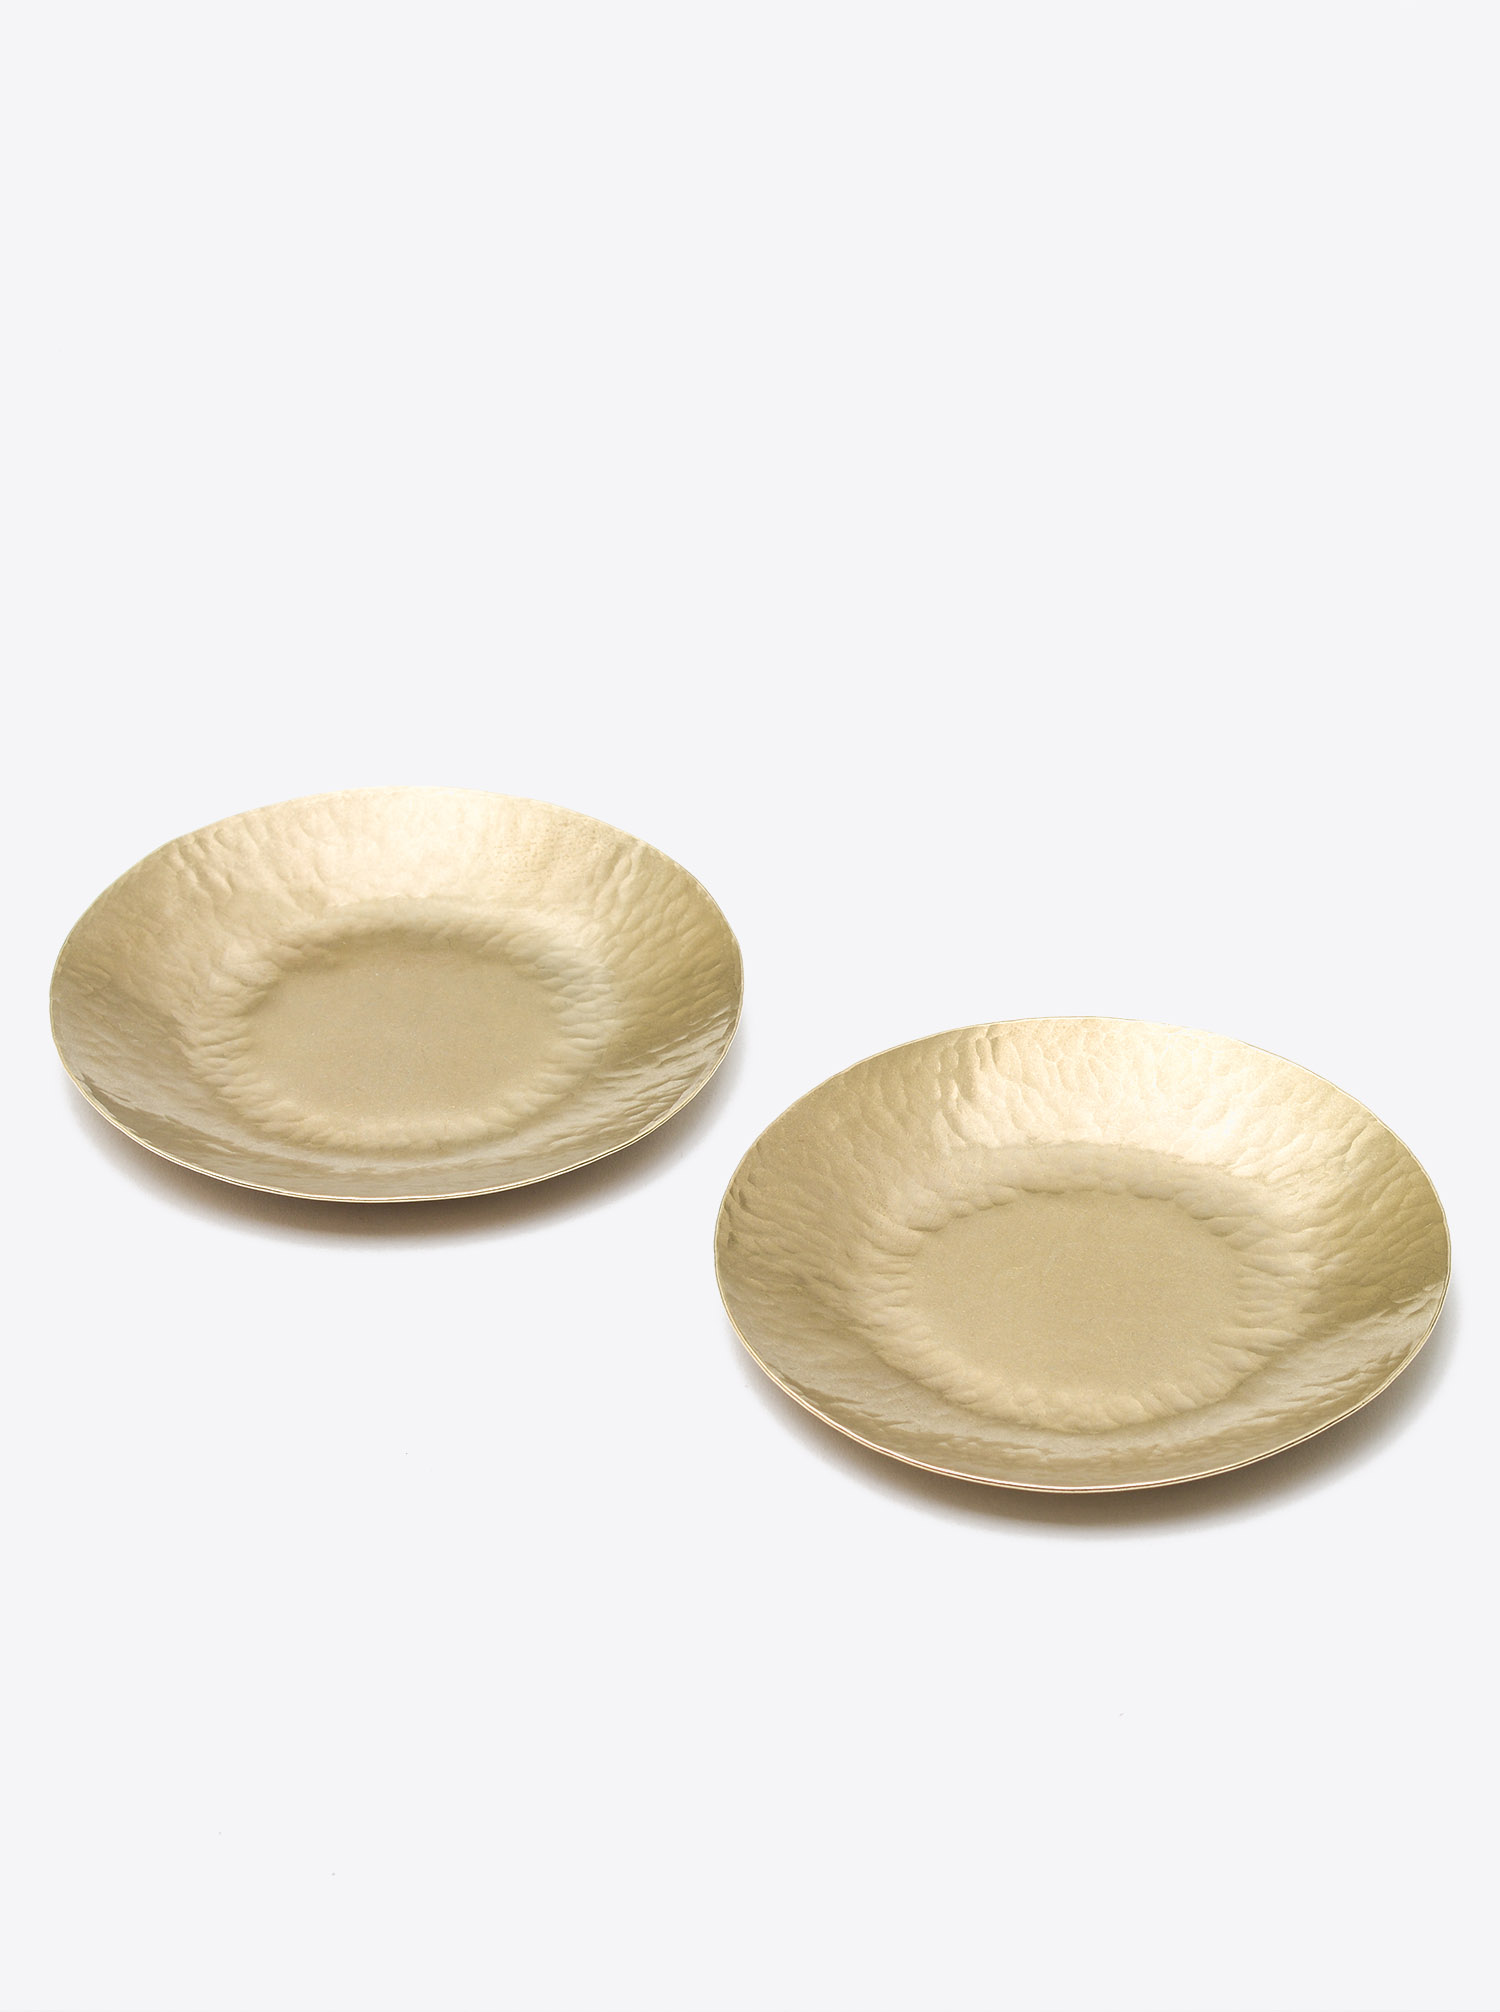 Set of 2 Plates Brass D12